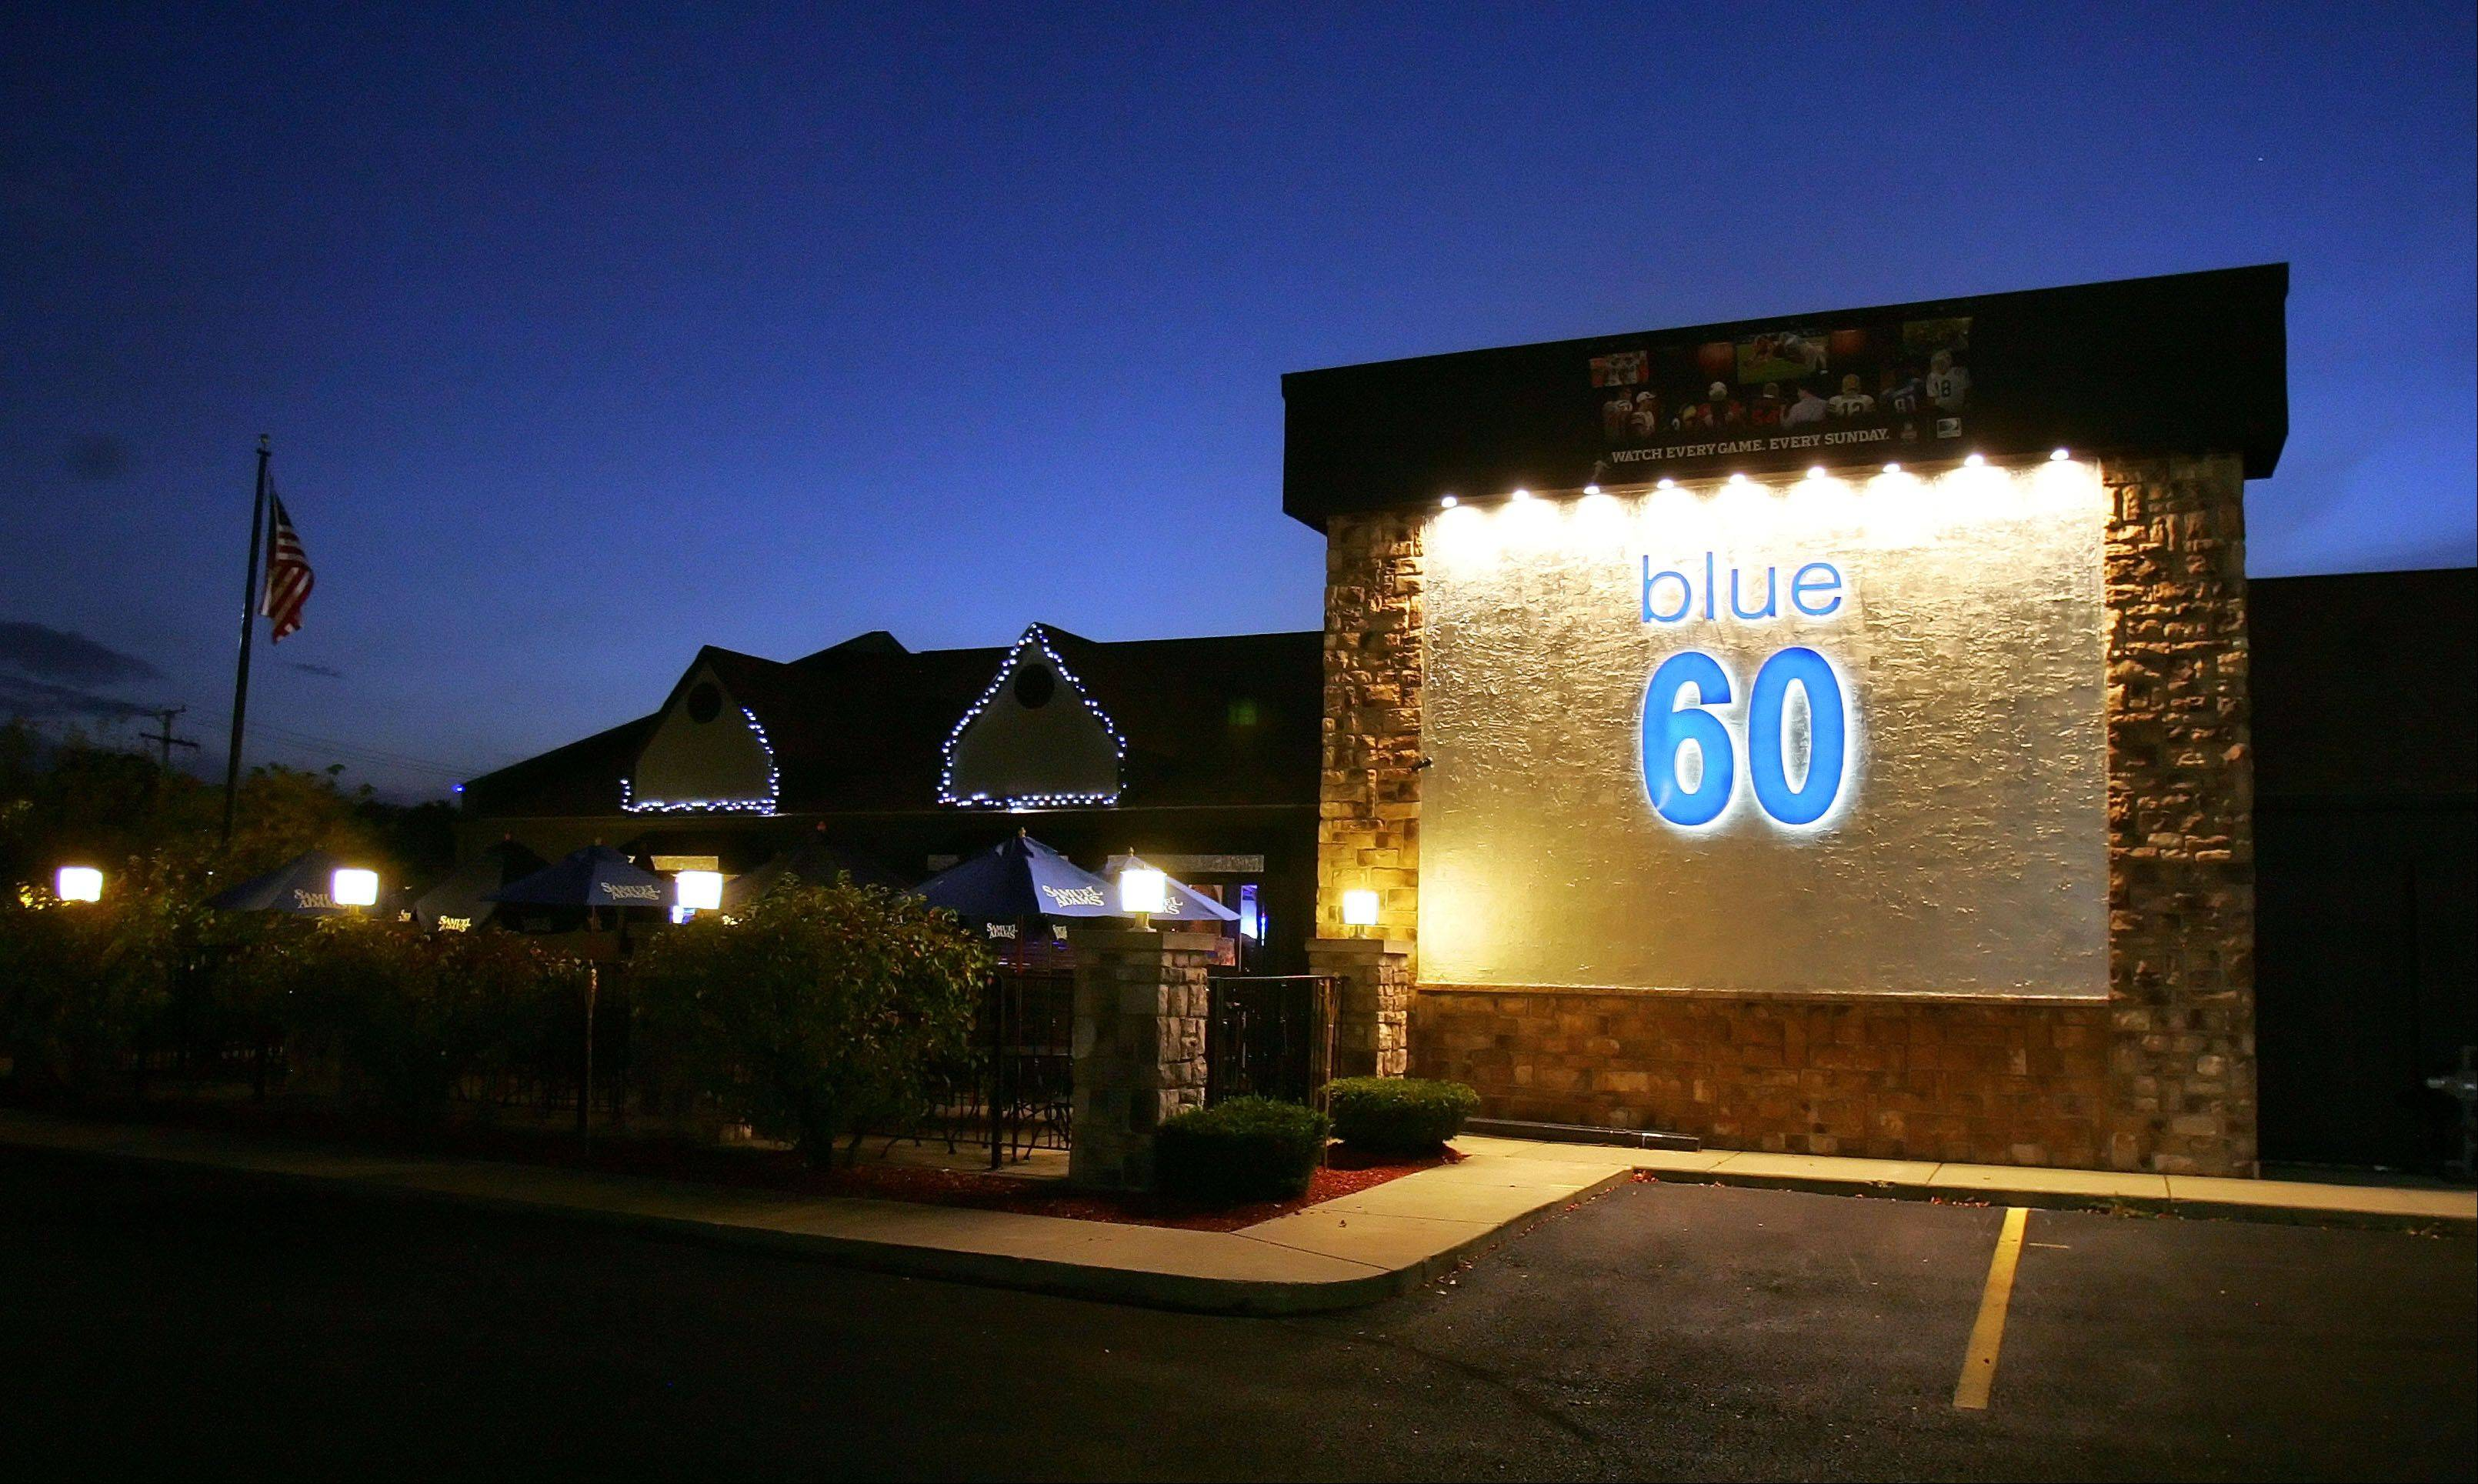 Steve Lundy/slundy@dailyherald.com � The Blue 60 restaurant and bar in Mundelein is facing penalties for multiple liquor-law violations.